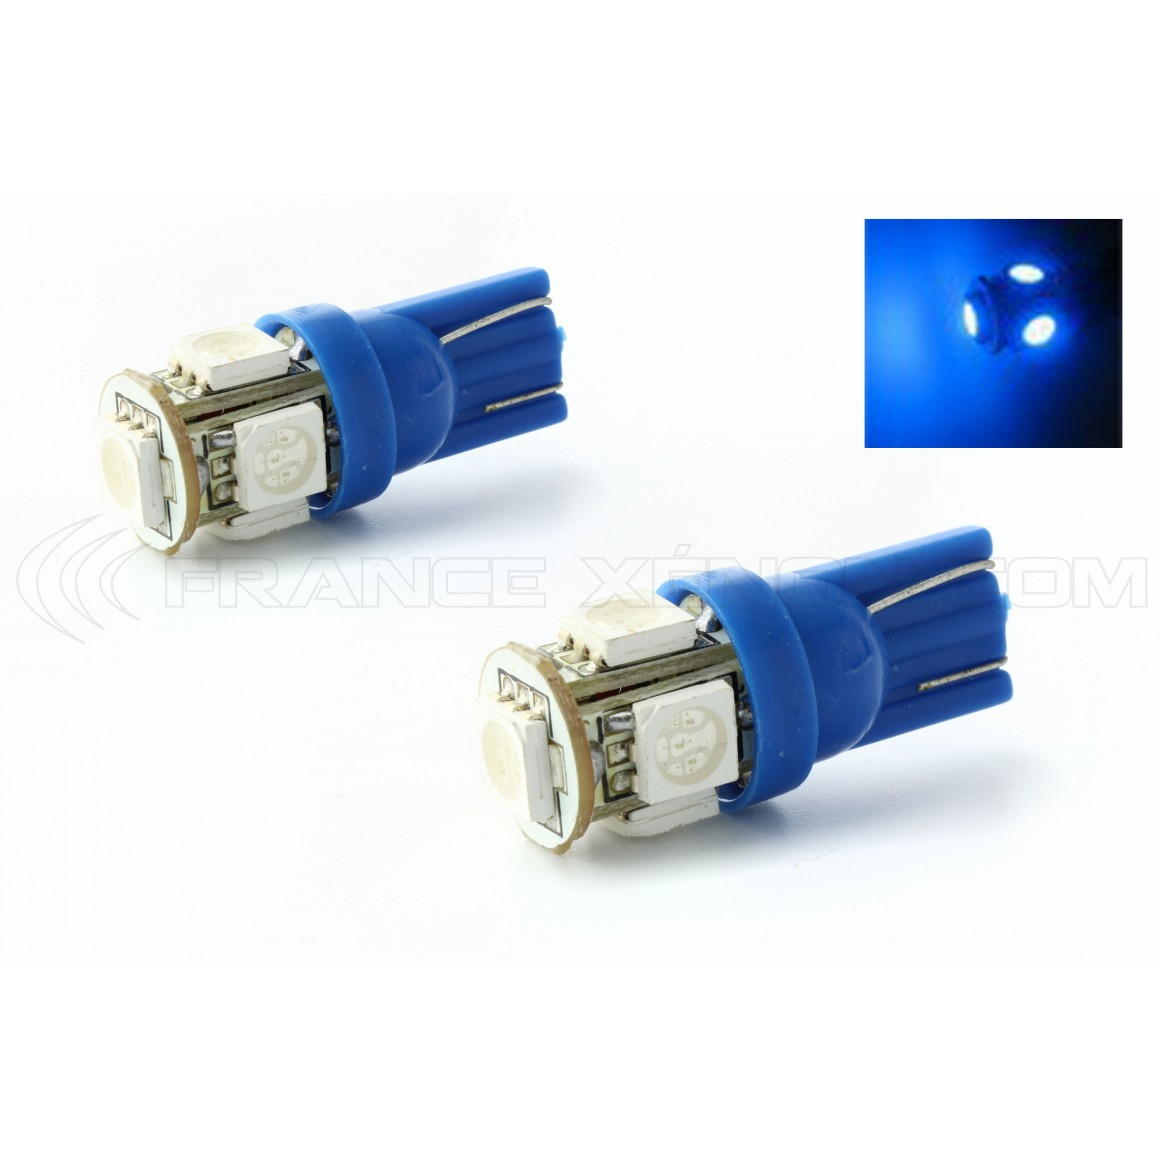 2 x BULBS 5 BLUE LEDS - SMD LED - 5 led - T10 W5W